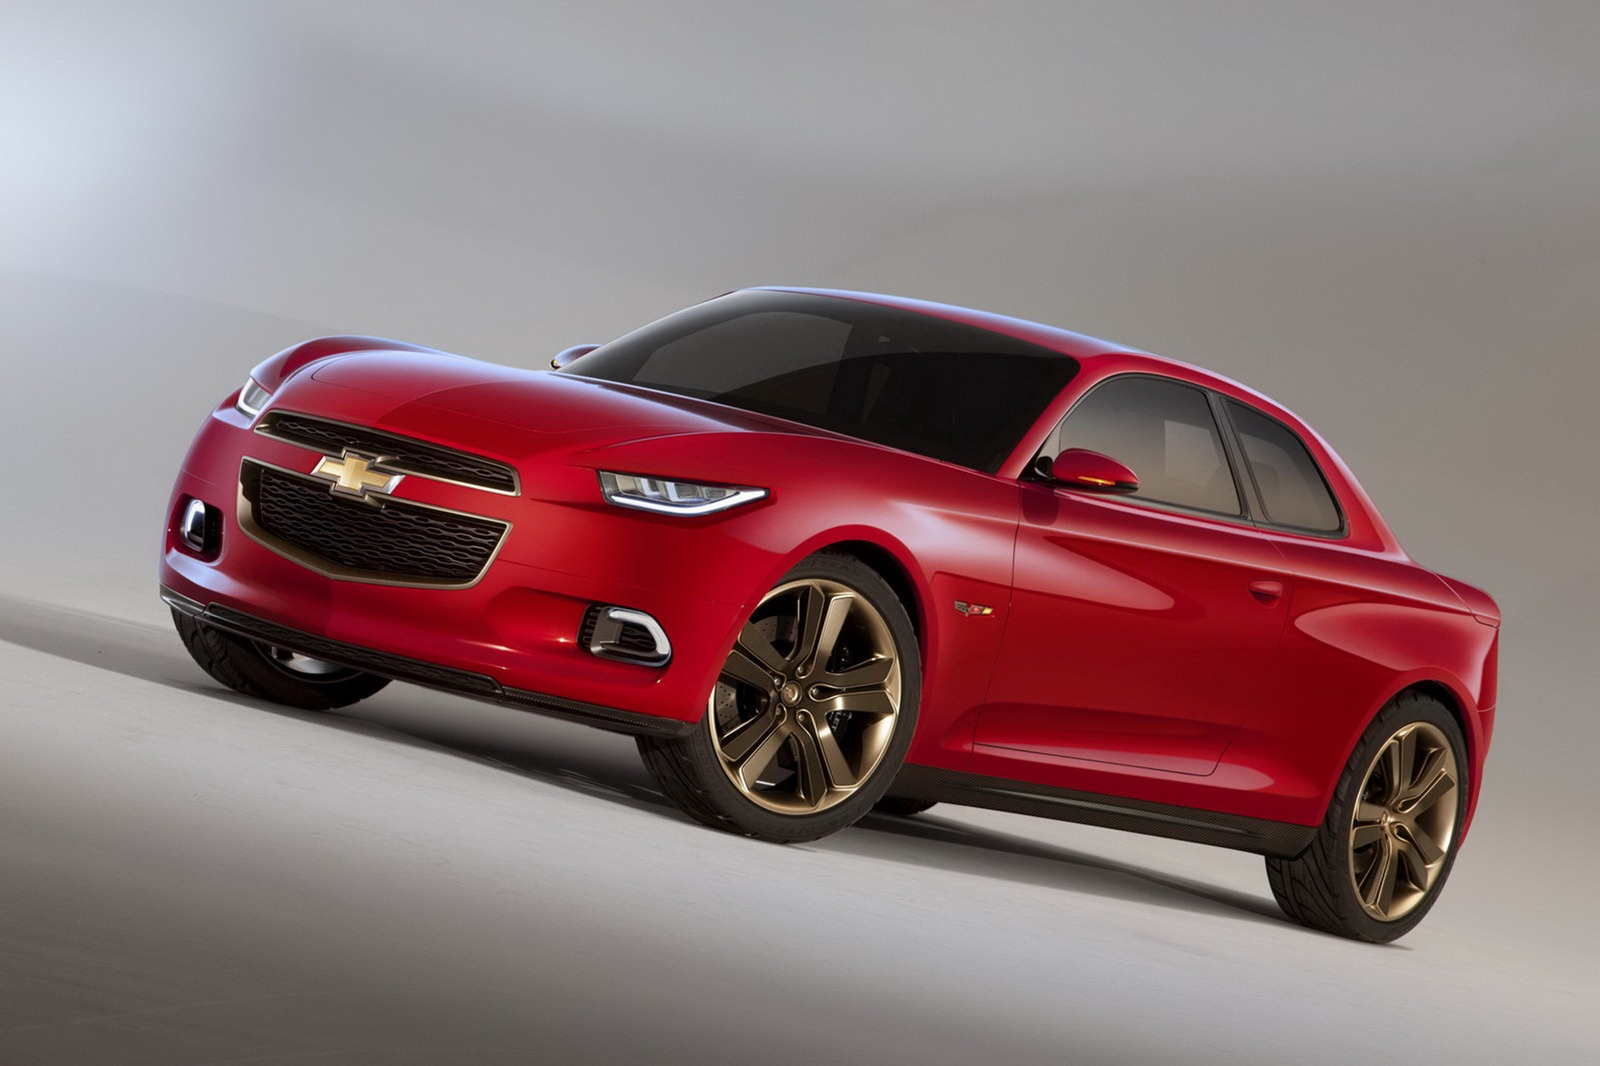 2012 Chevrolet Code 130r And Tru 140s Affordable Coupe